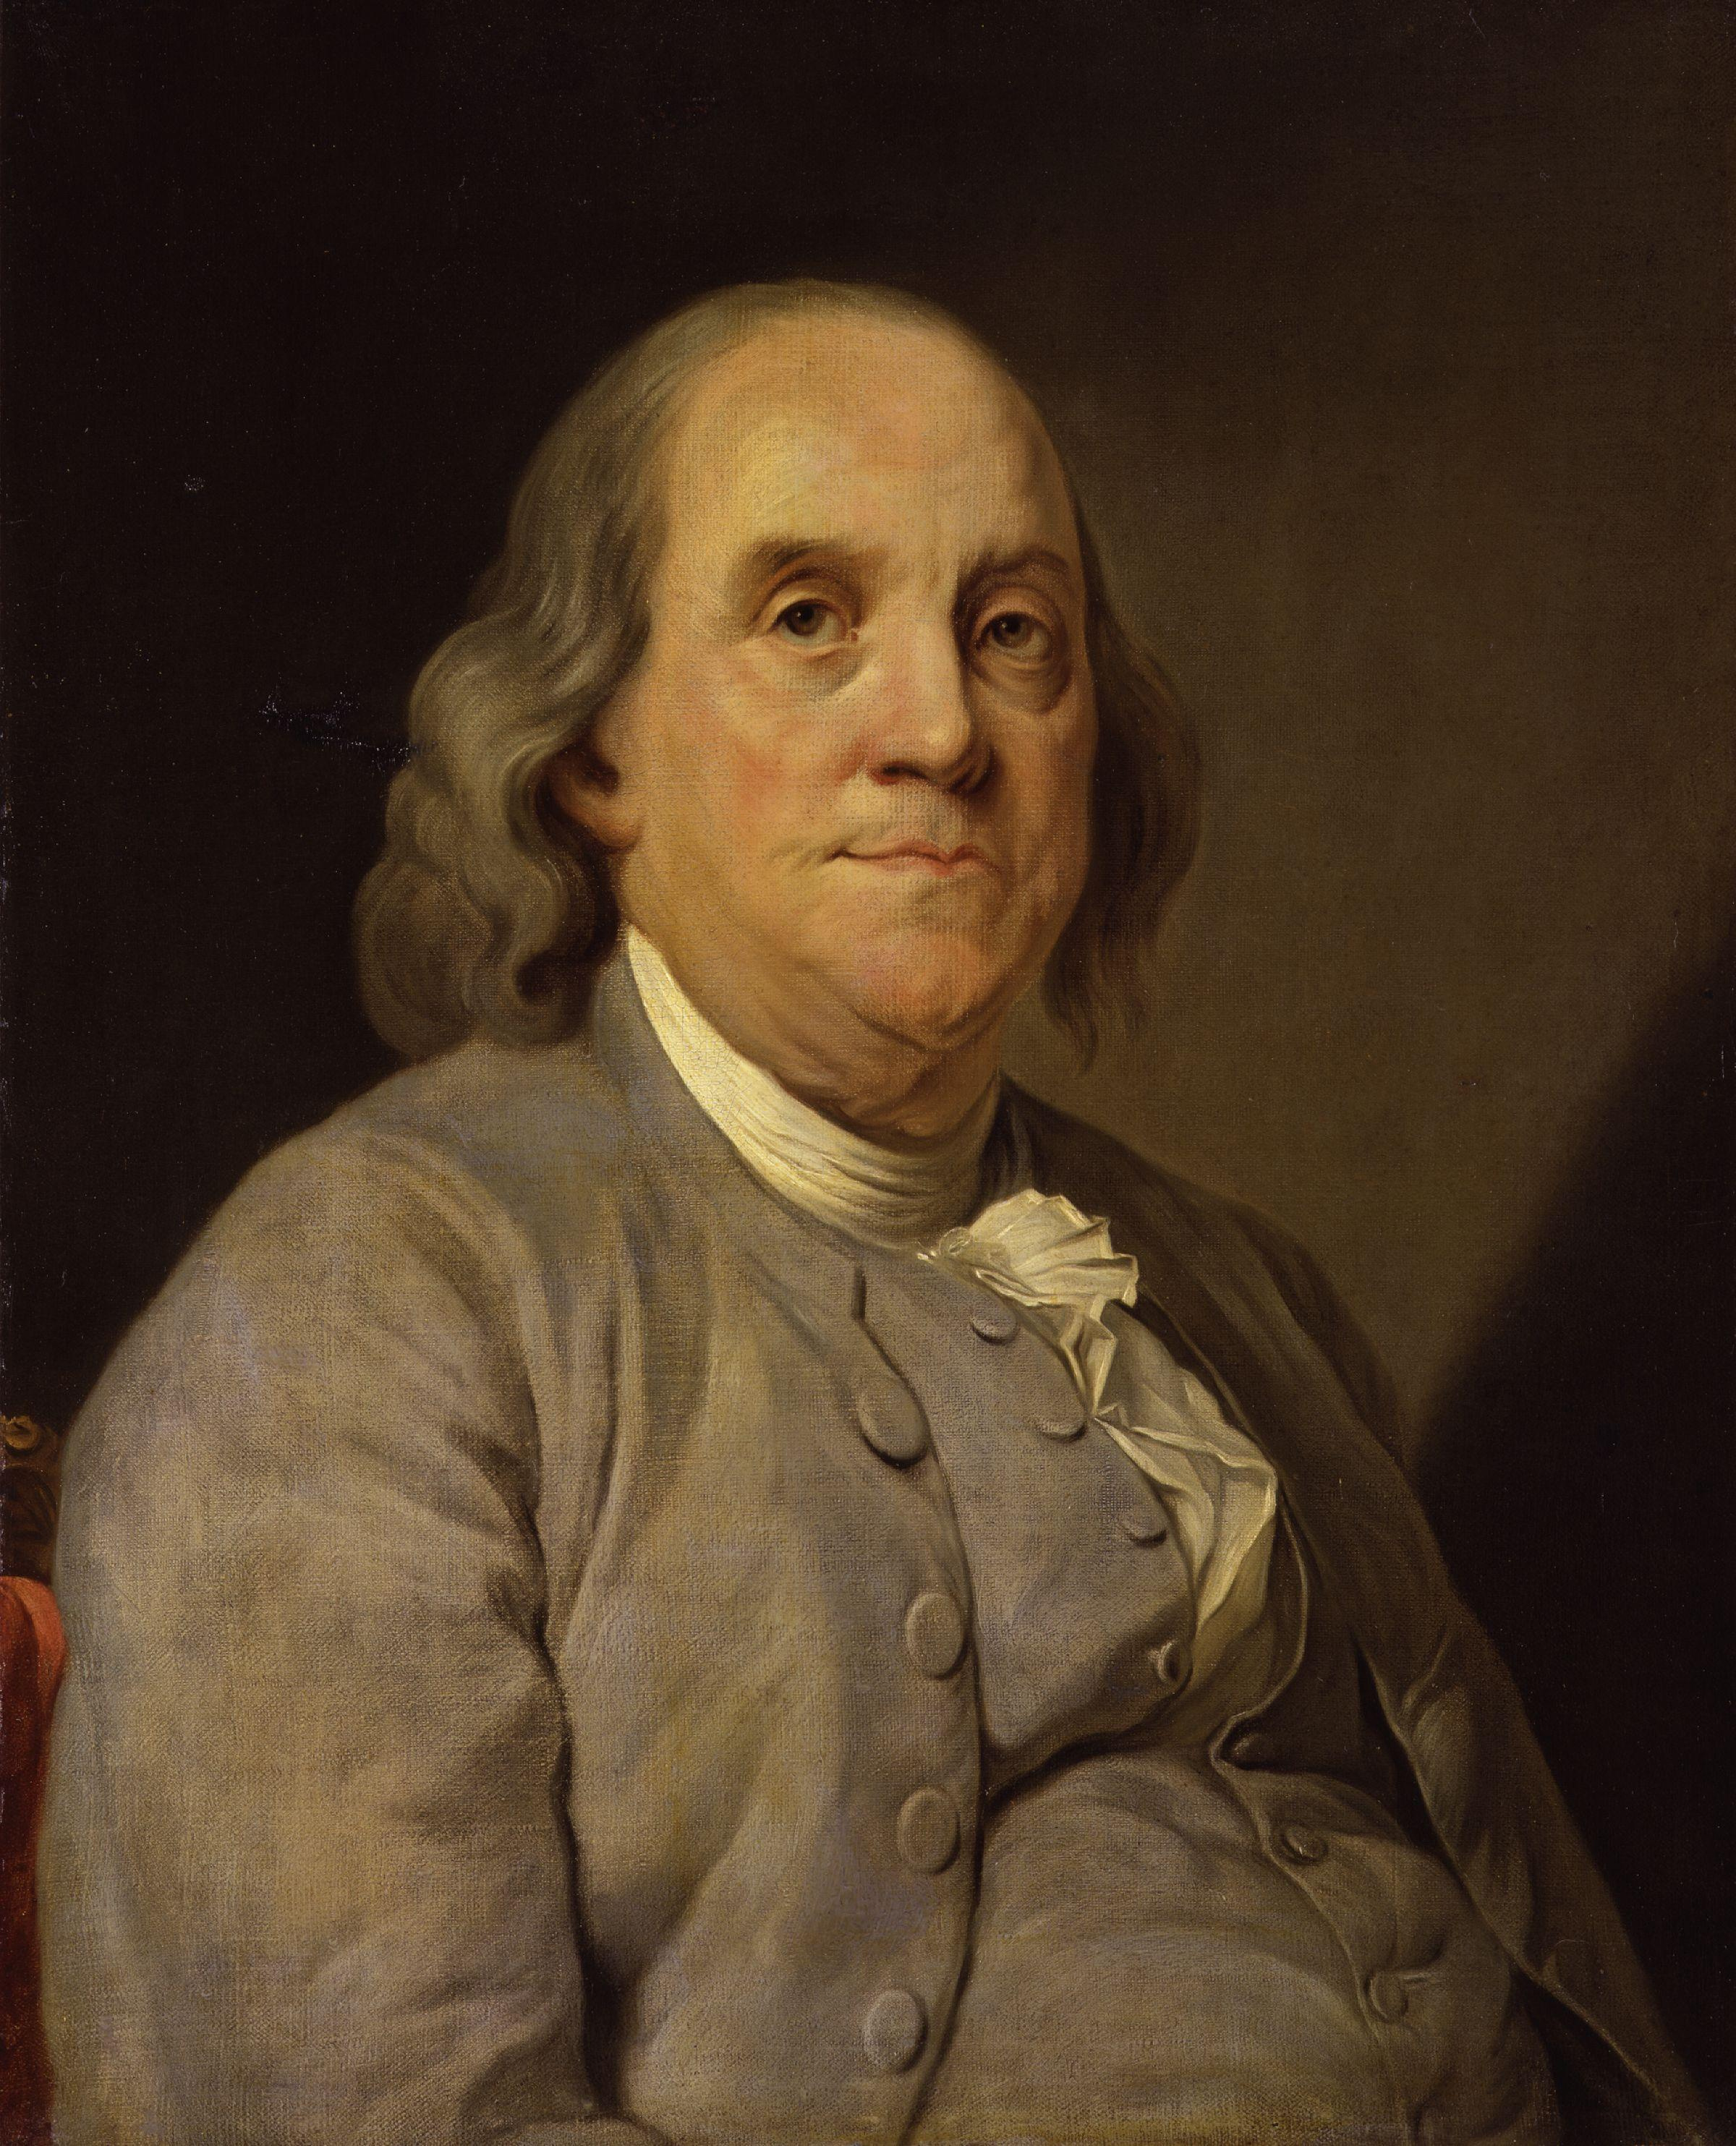 Joseph Siffrein Duplessis portrait of Benjamin Franklin c. 1785, courtesy of the National Portrait Gallery.